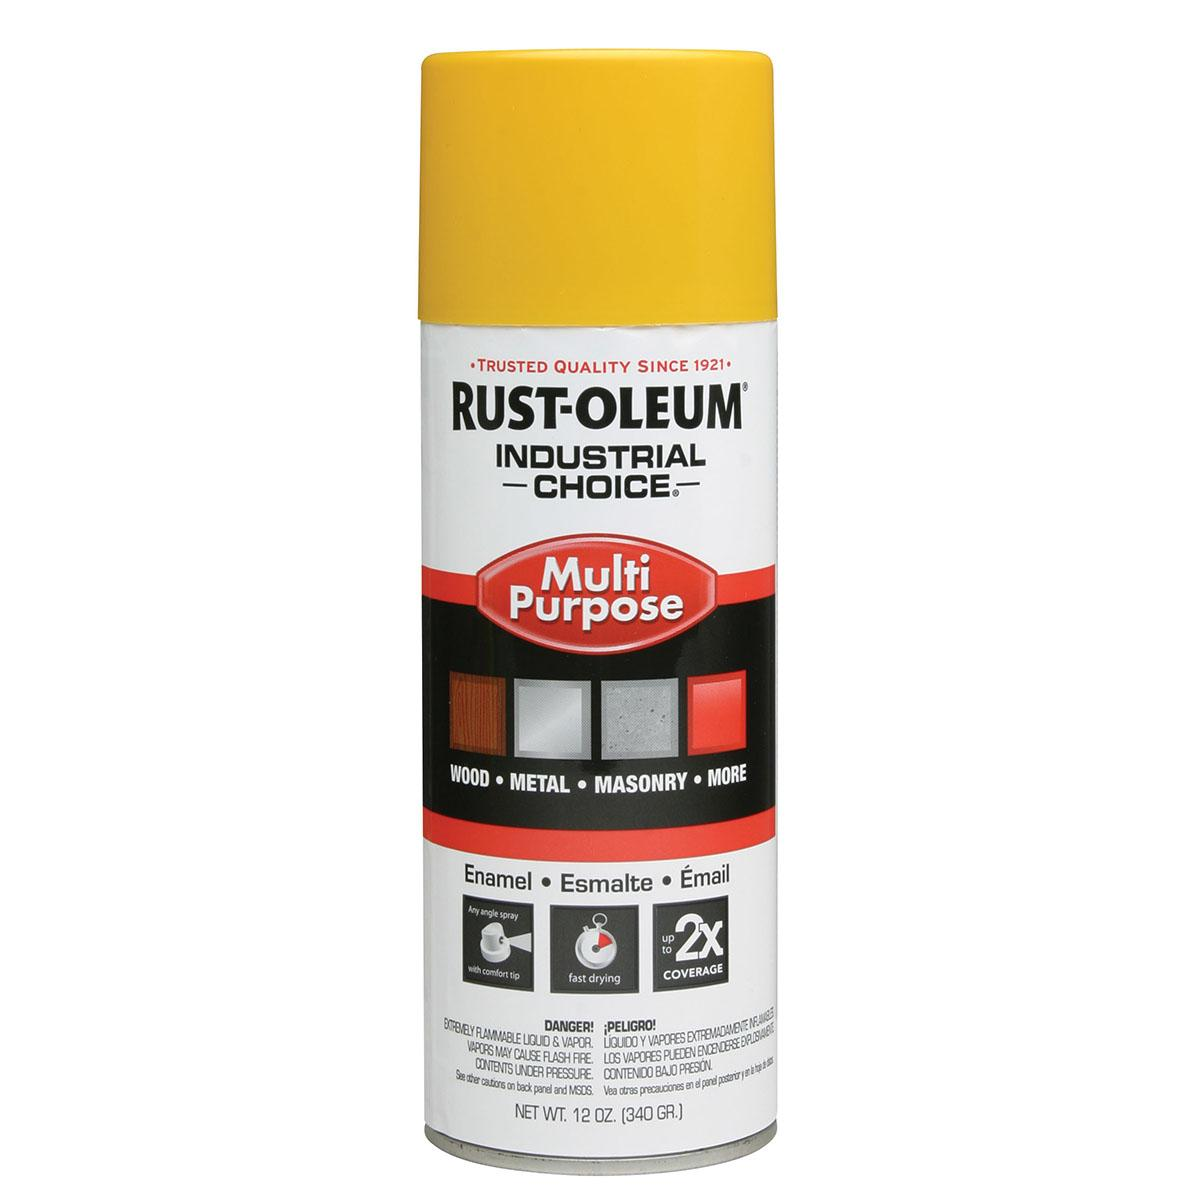 Rust-Oleum® Industrial Choice® 1644830 12 oz Aerosol Can Solvent Based Multi-Purpose Alkyd Enamel Spray Paint, Gloss Safety Yellow